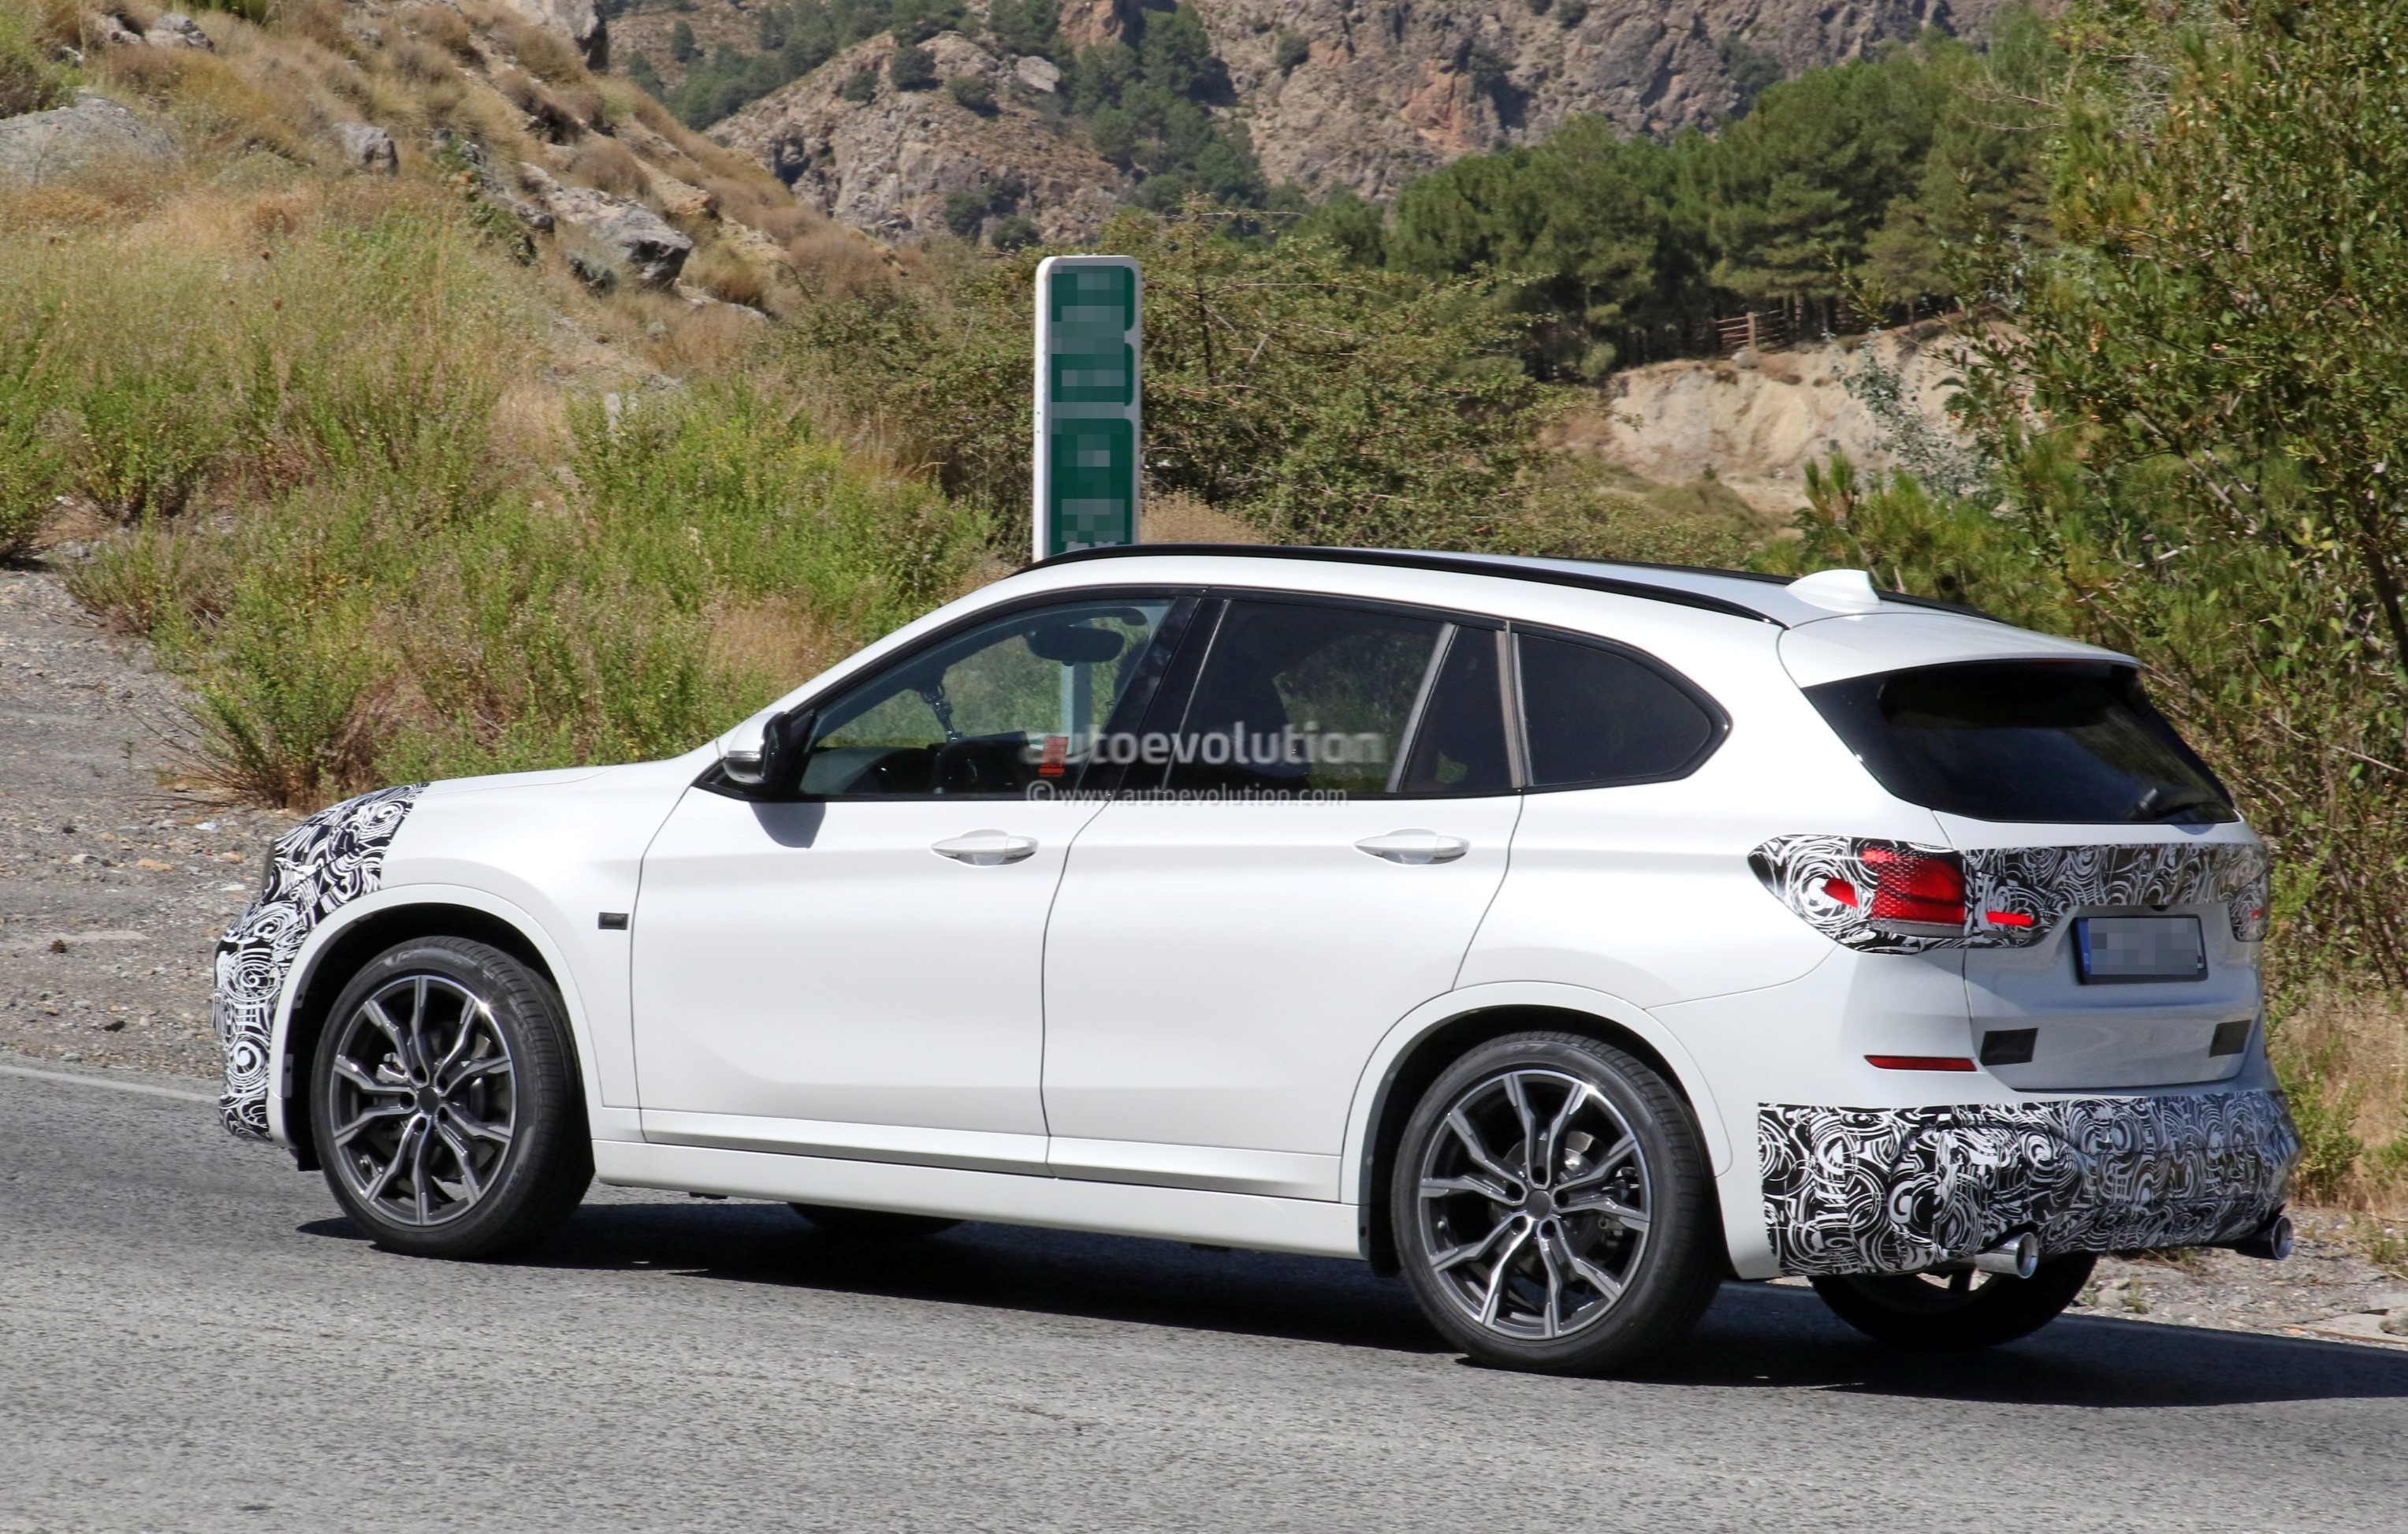 2019 bmw x1 lci spied hotweather testing in europe